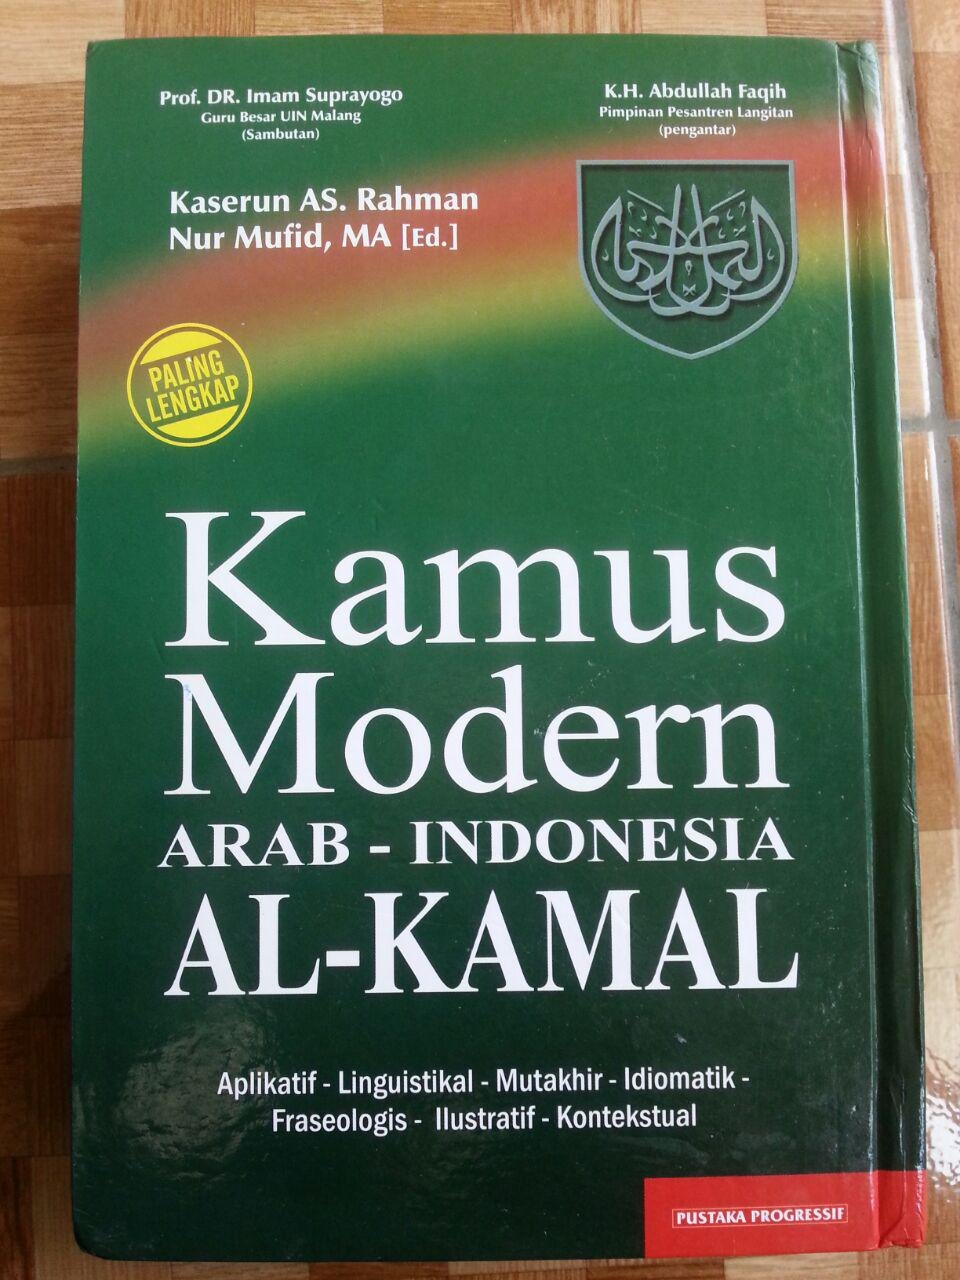 Kamus Modern Arab-Indonesia Al-Kamal cover 2